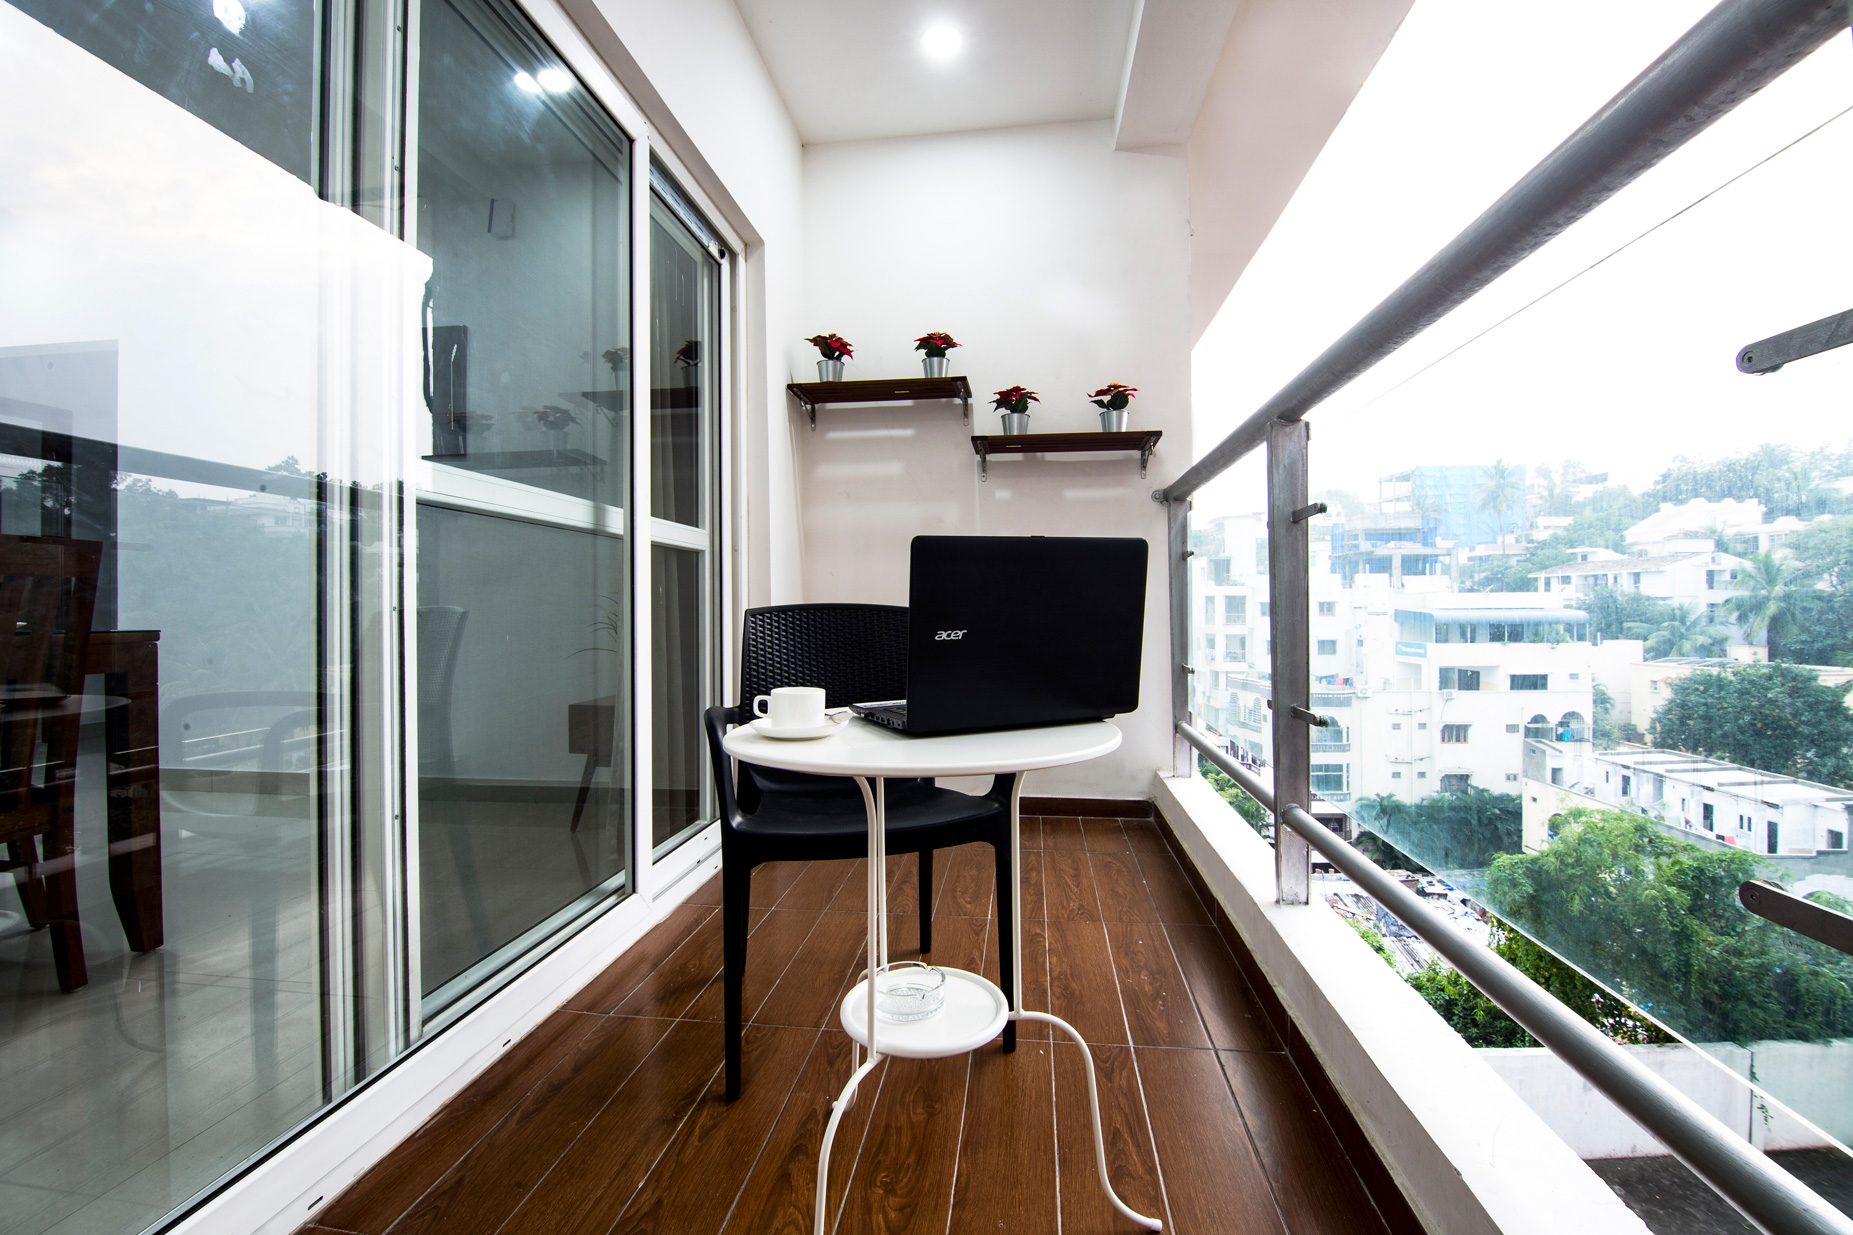 skyla-service-apartment-hyderabad-banjara-hills-bluefox-restaurant-executive5.jpg